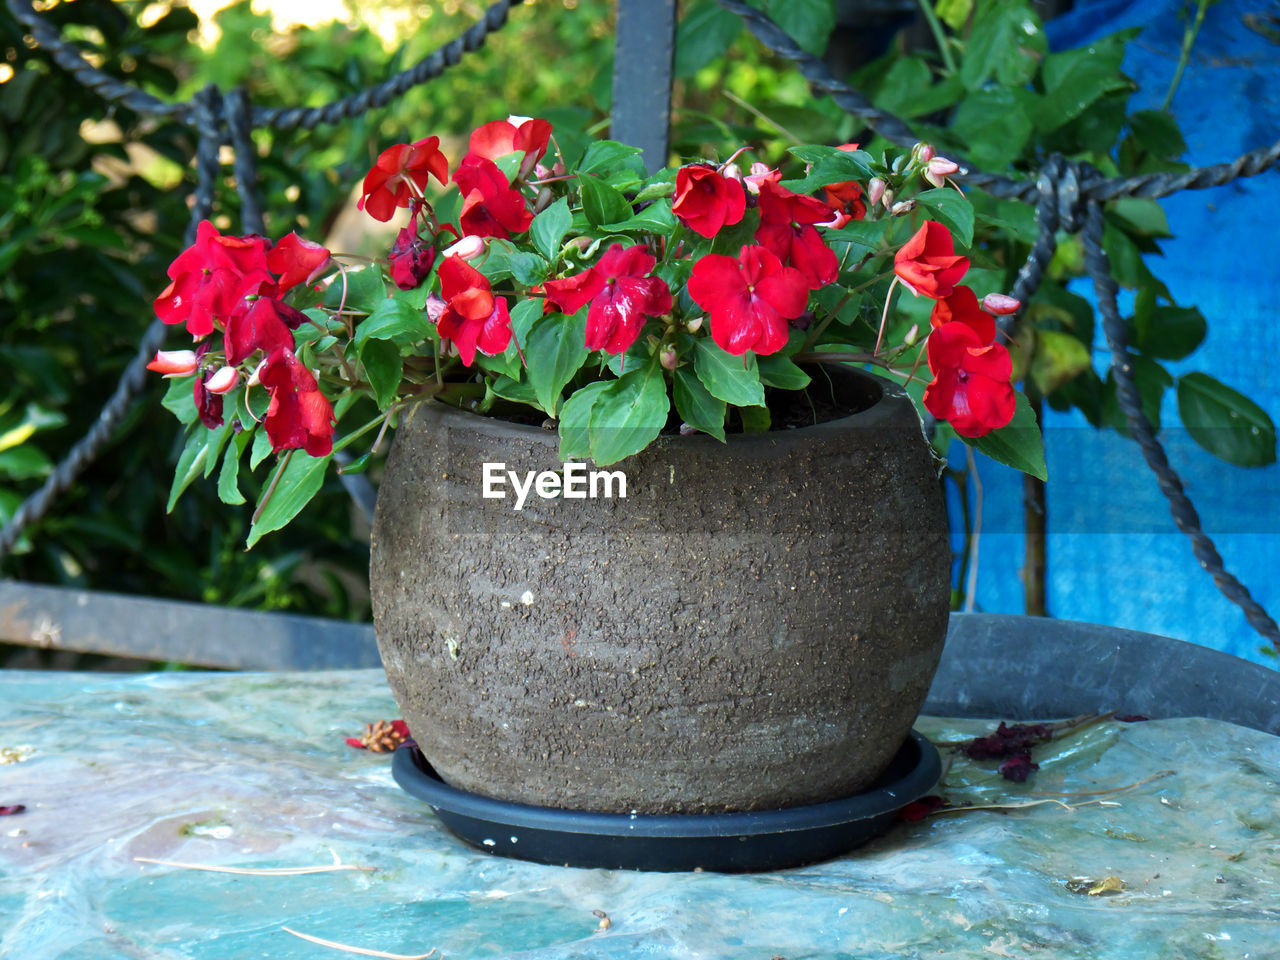 plant, nature, plant part, growth, leaf, red, no people, flowering plant, close-up, day, flower, potted plant, outdoors, beauty in nature, vulnerability, fragility, freshness, focus on foreground, green color, petal, flower pot